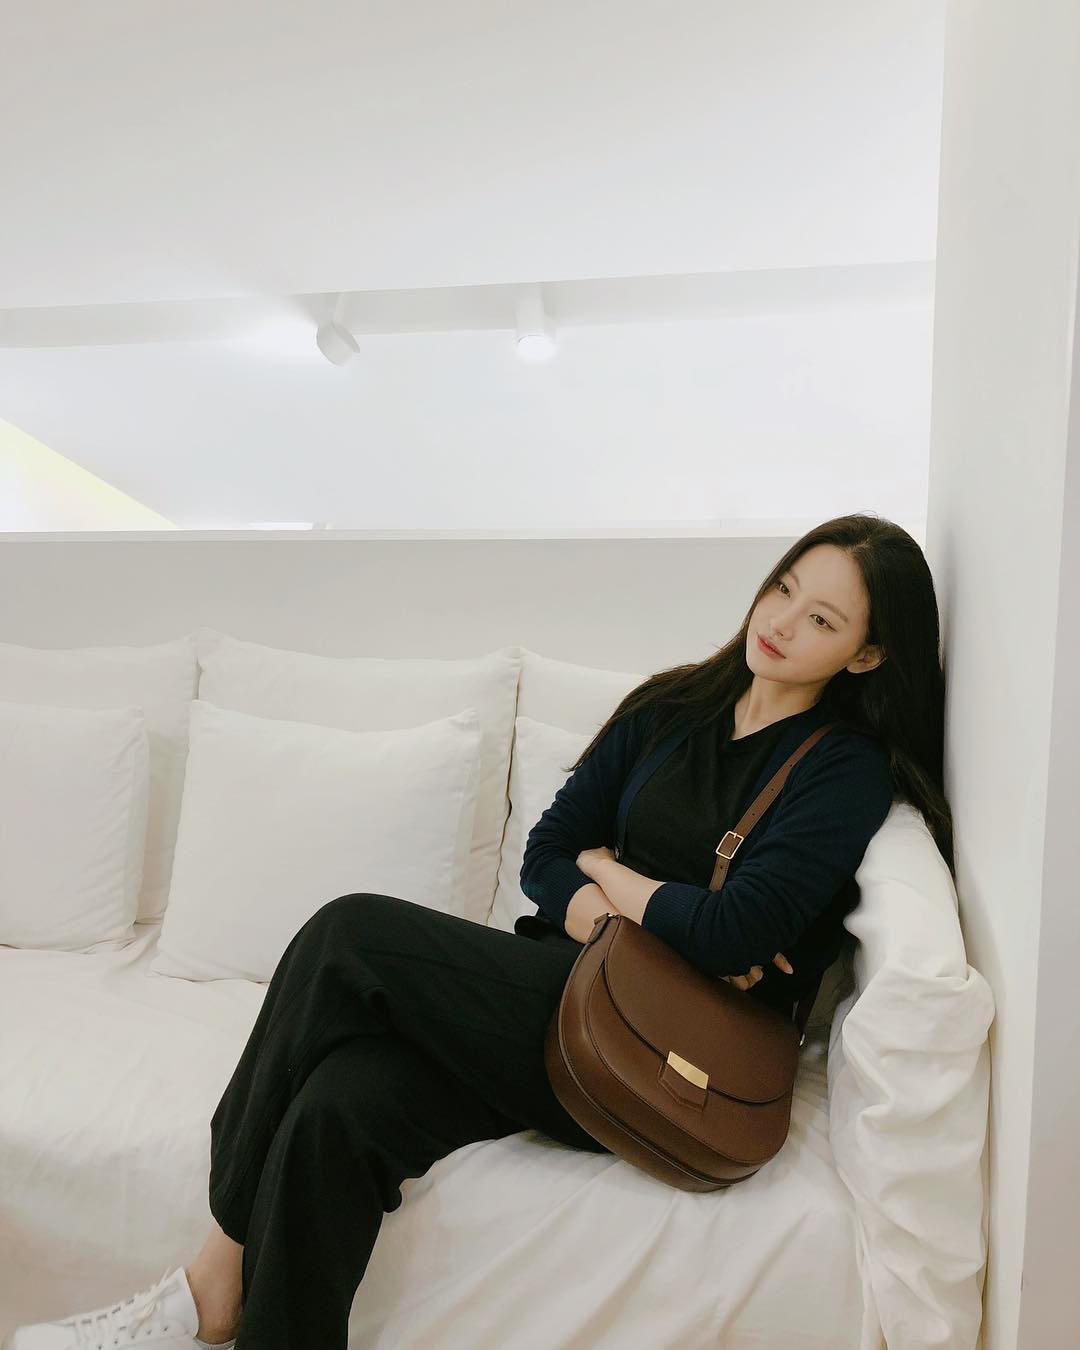 <p>On the 11th, Oh Yeon-seo made a photograph of her sitting on the couch wearing an all-black fashion in a white background through her Instagram.</p><p>Contrasting with the white background all over, the all-black fashion emphasizes Hers chic charm rather. Especially, Her looks in Vada looking somewhere with his arms folded while creating a cool atmosphere.</p>